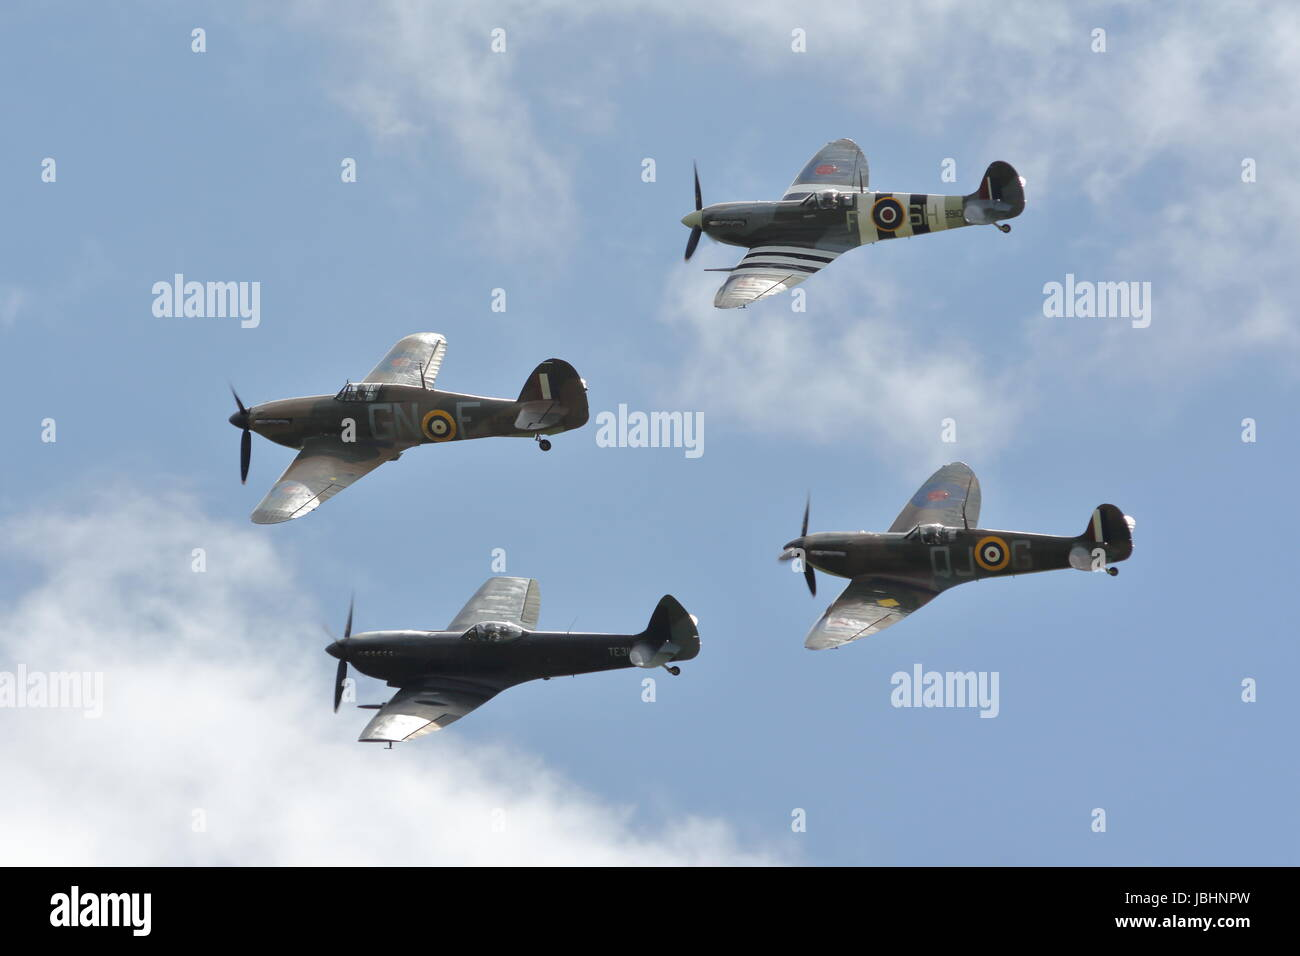 RAF Cosford, Shropshire, UK. 11th June, 2017. The BBMF displayed their legendary Spitfires and a Hurricane Credit: - Stock Image